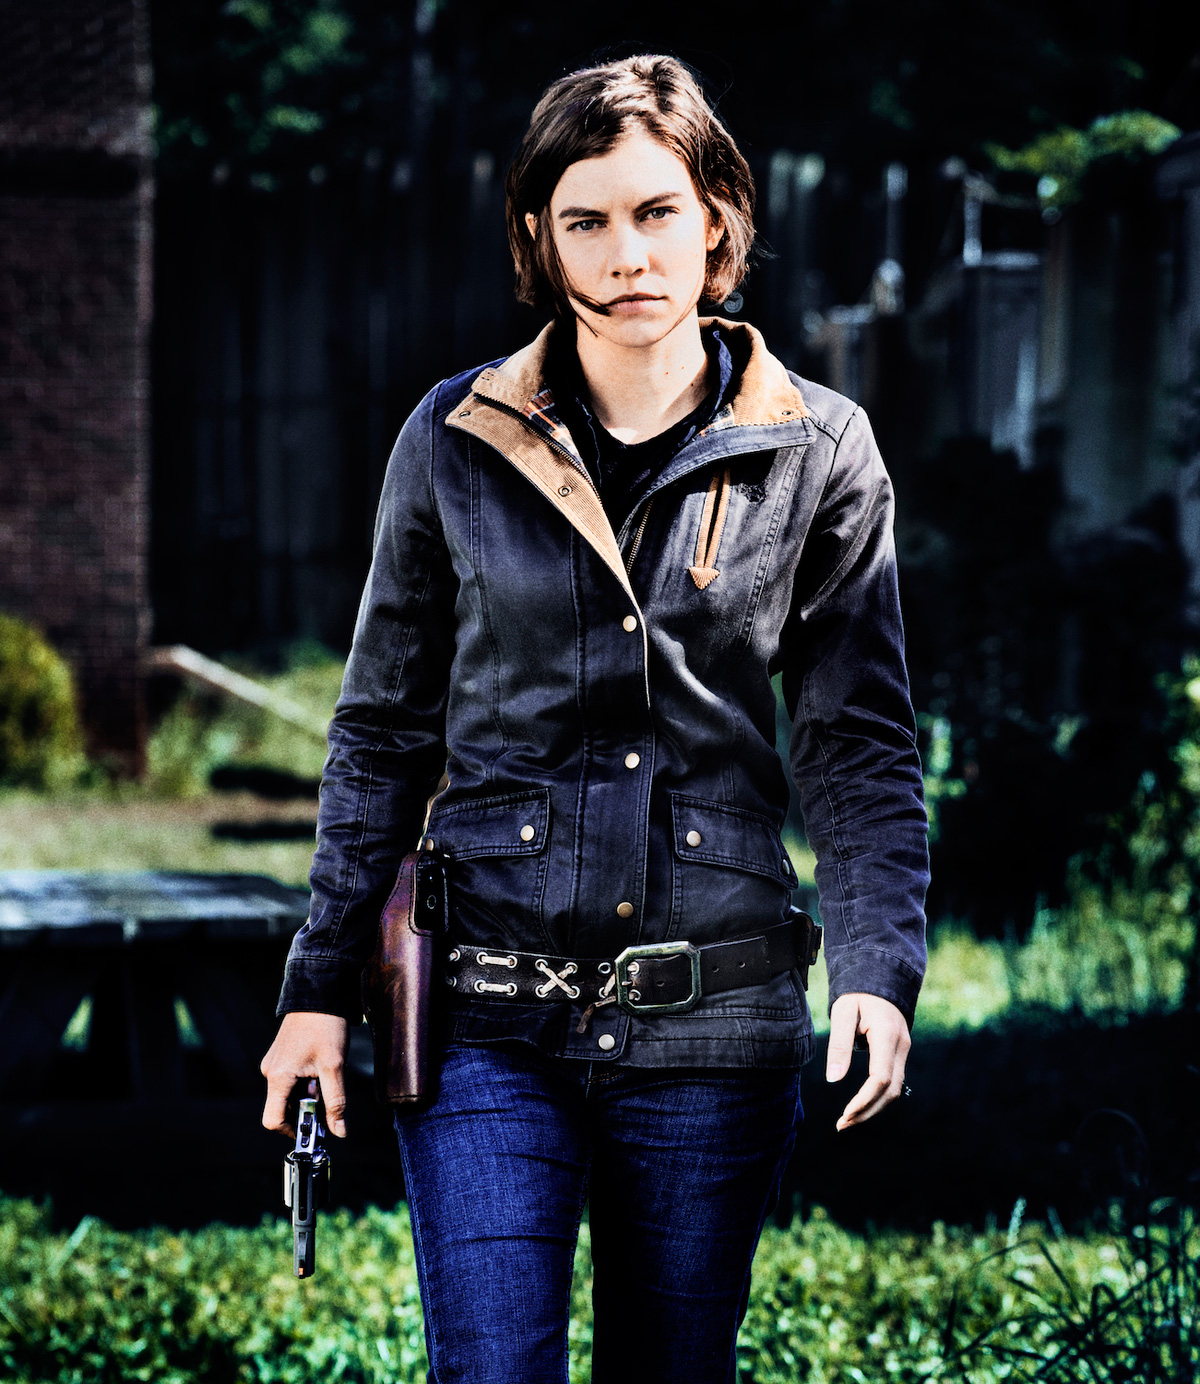 The Walking Dead: Impasse sobre destino de Lauren Cohan já incomoda colegas de elenco